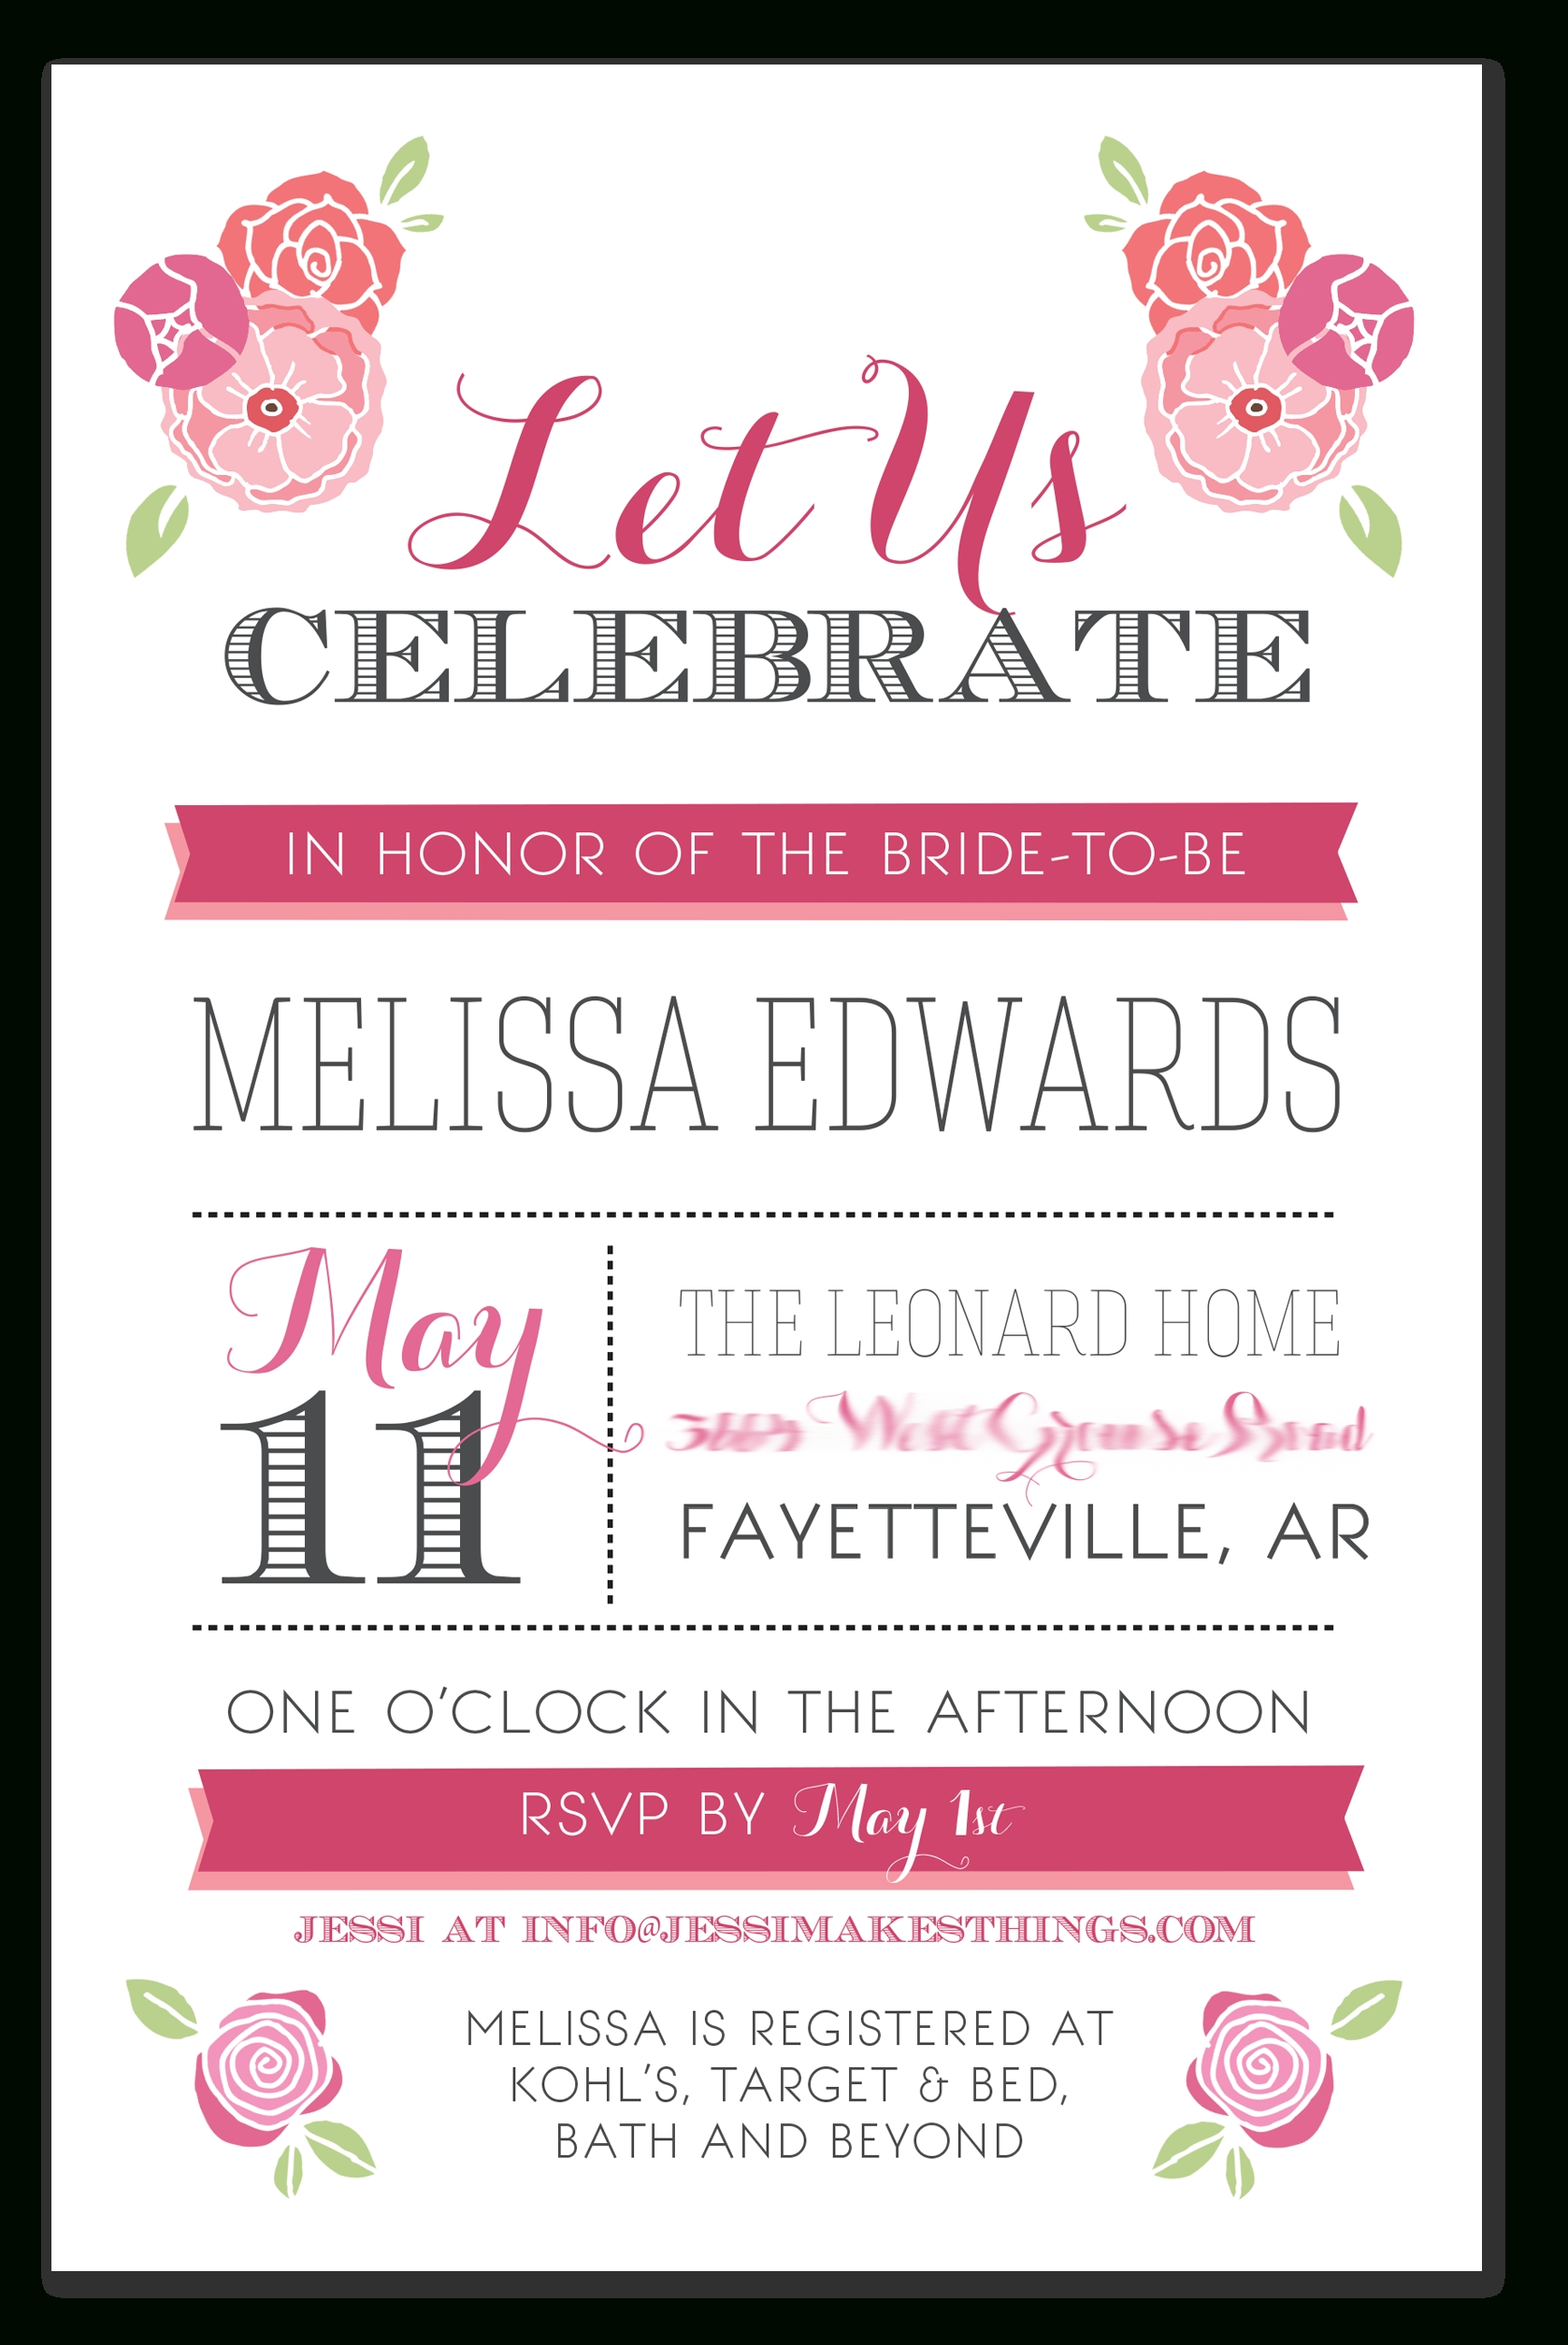 10 Ideal Bridal Shower Wishing Well Ideas photo bridal shower gift wish list image 1 2020